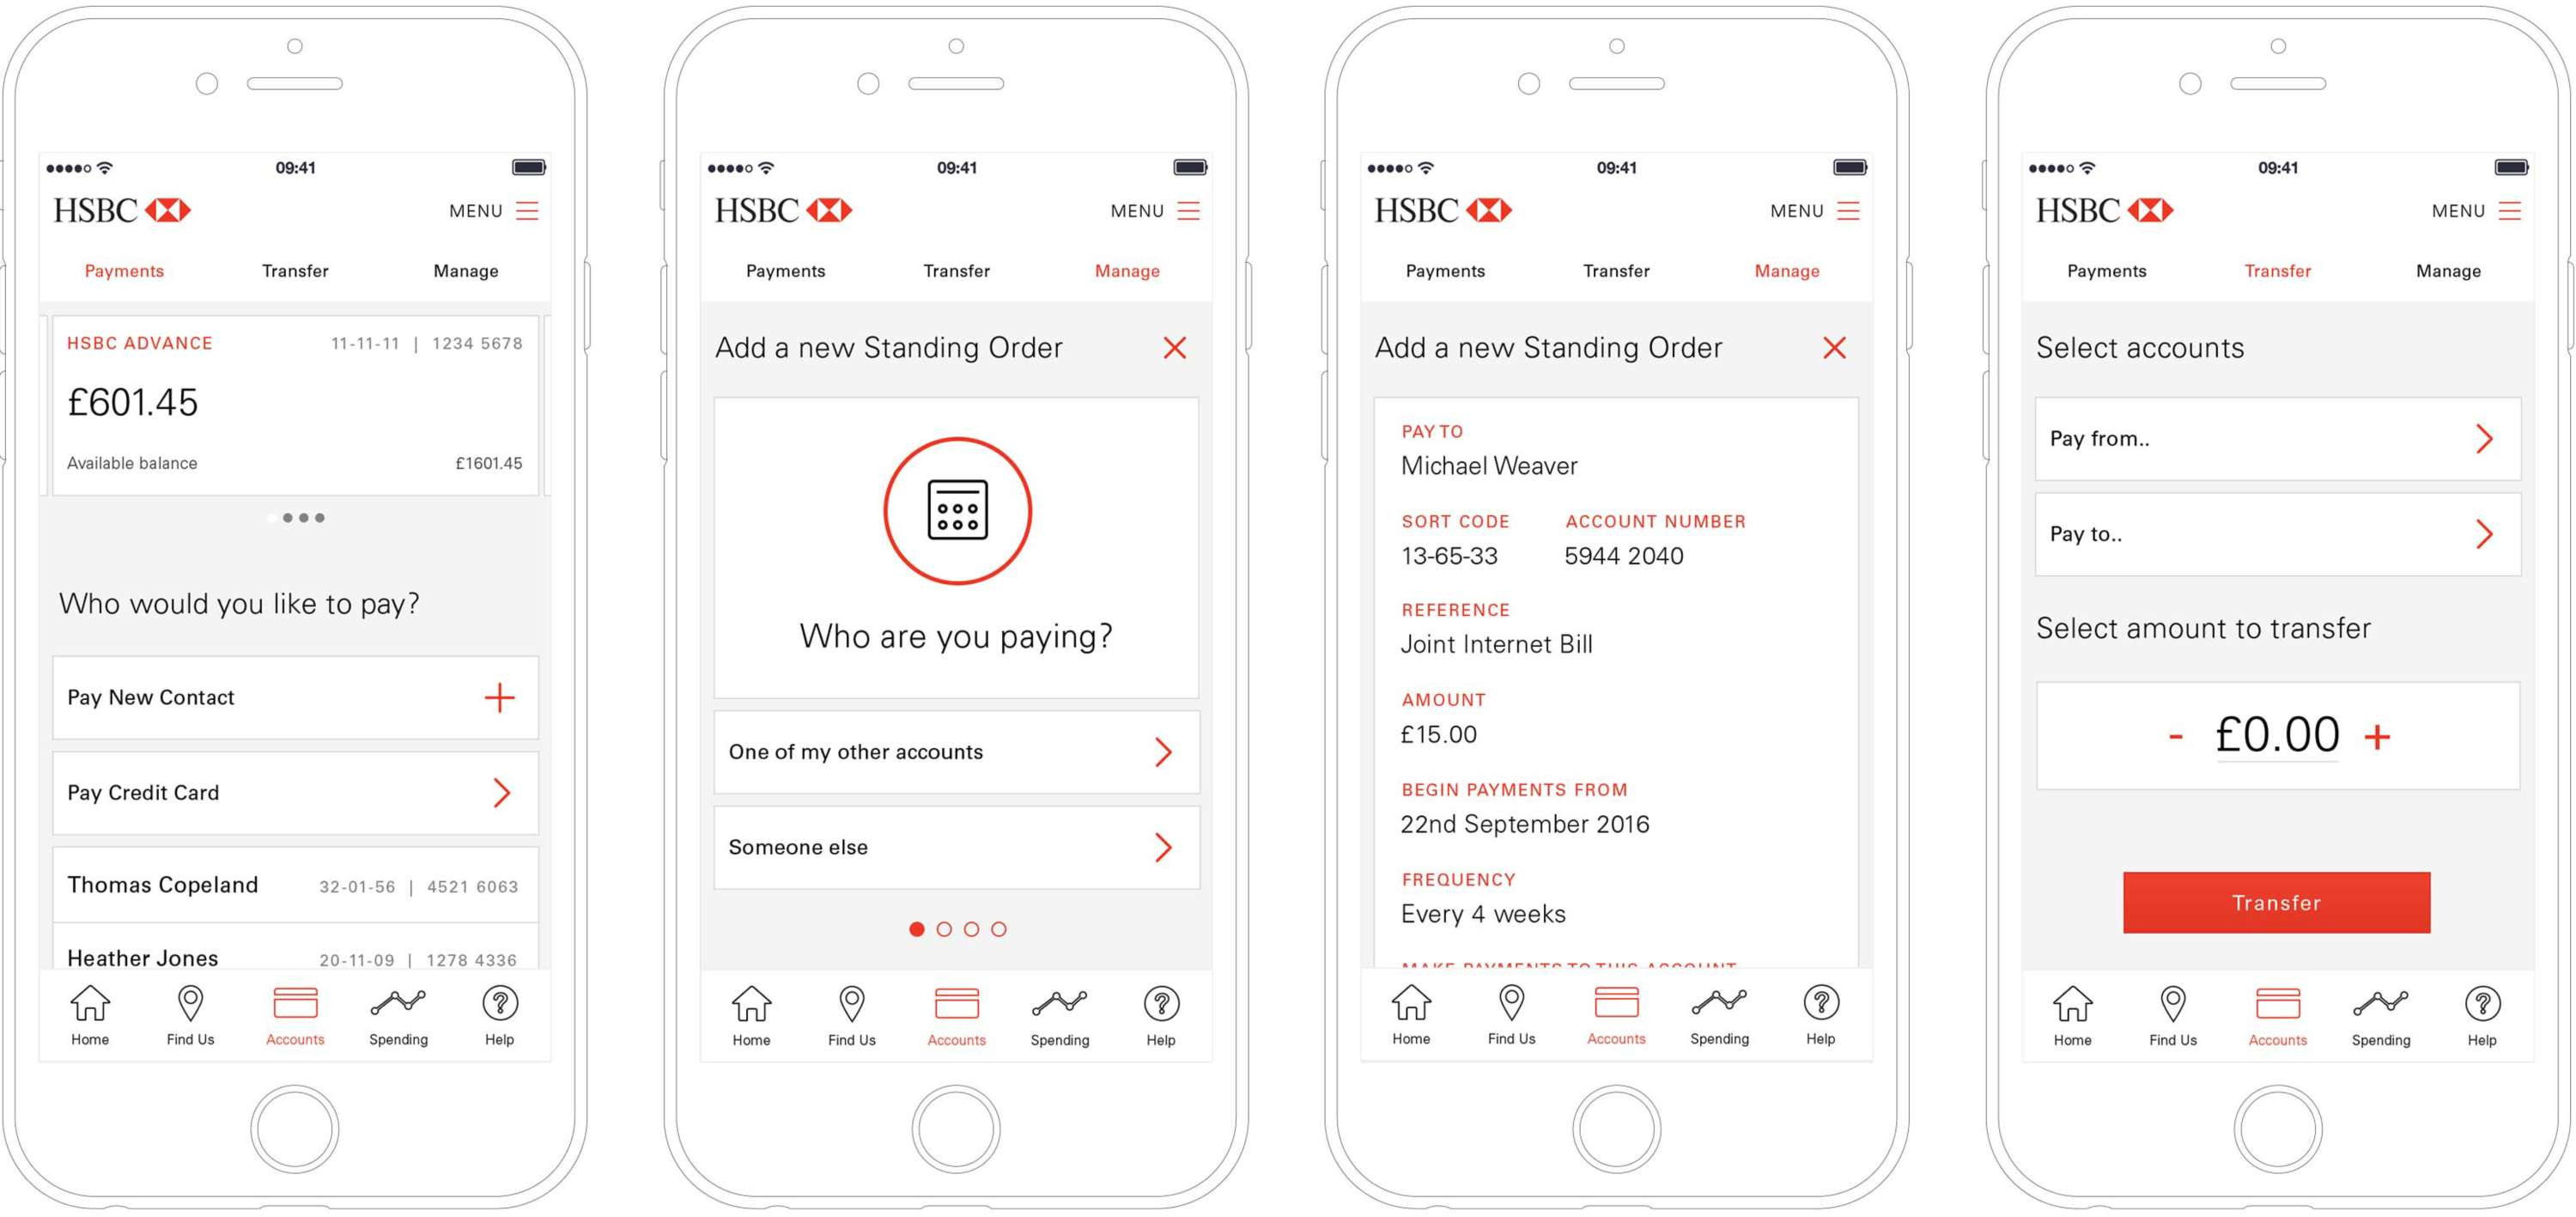 HSBC Mobile Banking App (Concept) | The Dots